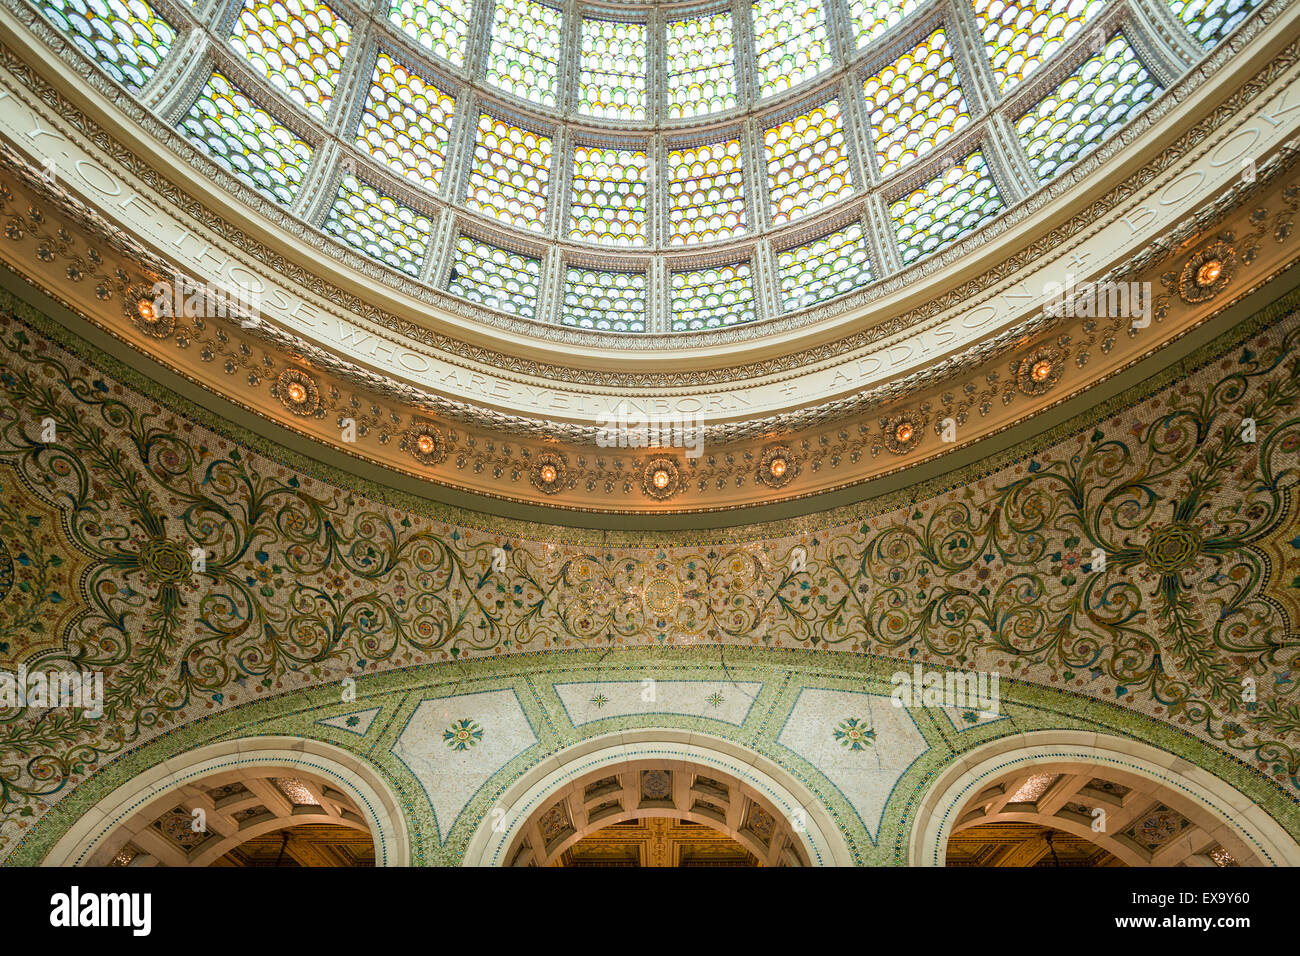 vaulting and domed skylight, Chicago Cultural Center, formerly the Chicago Public Library, Chicago, Illinois, USA - Stock Image